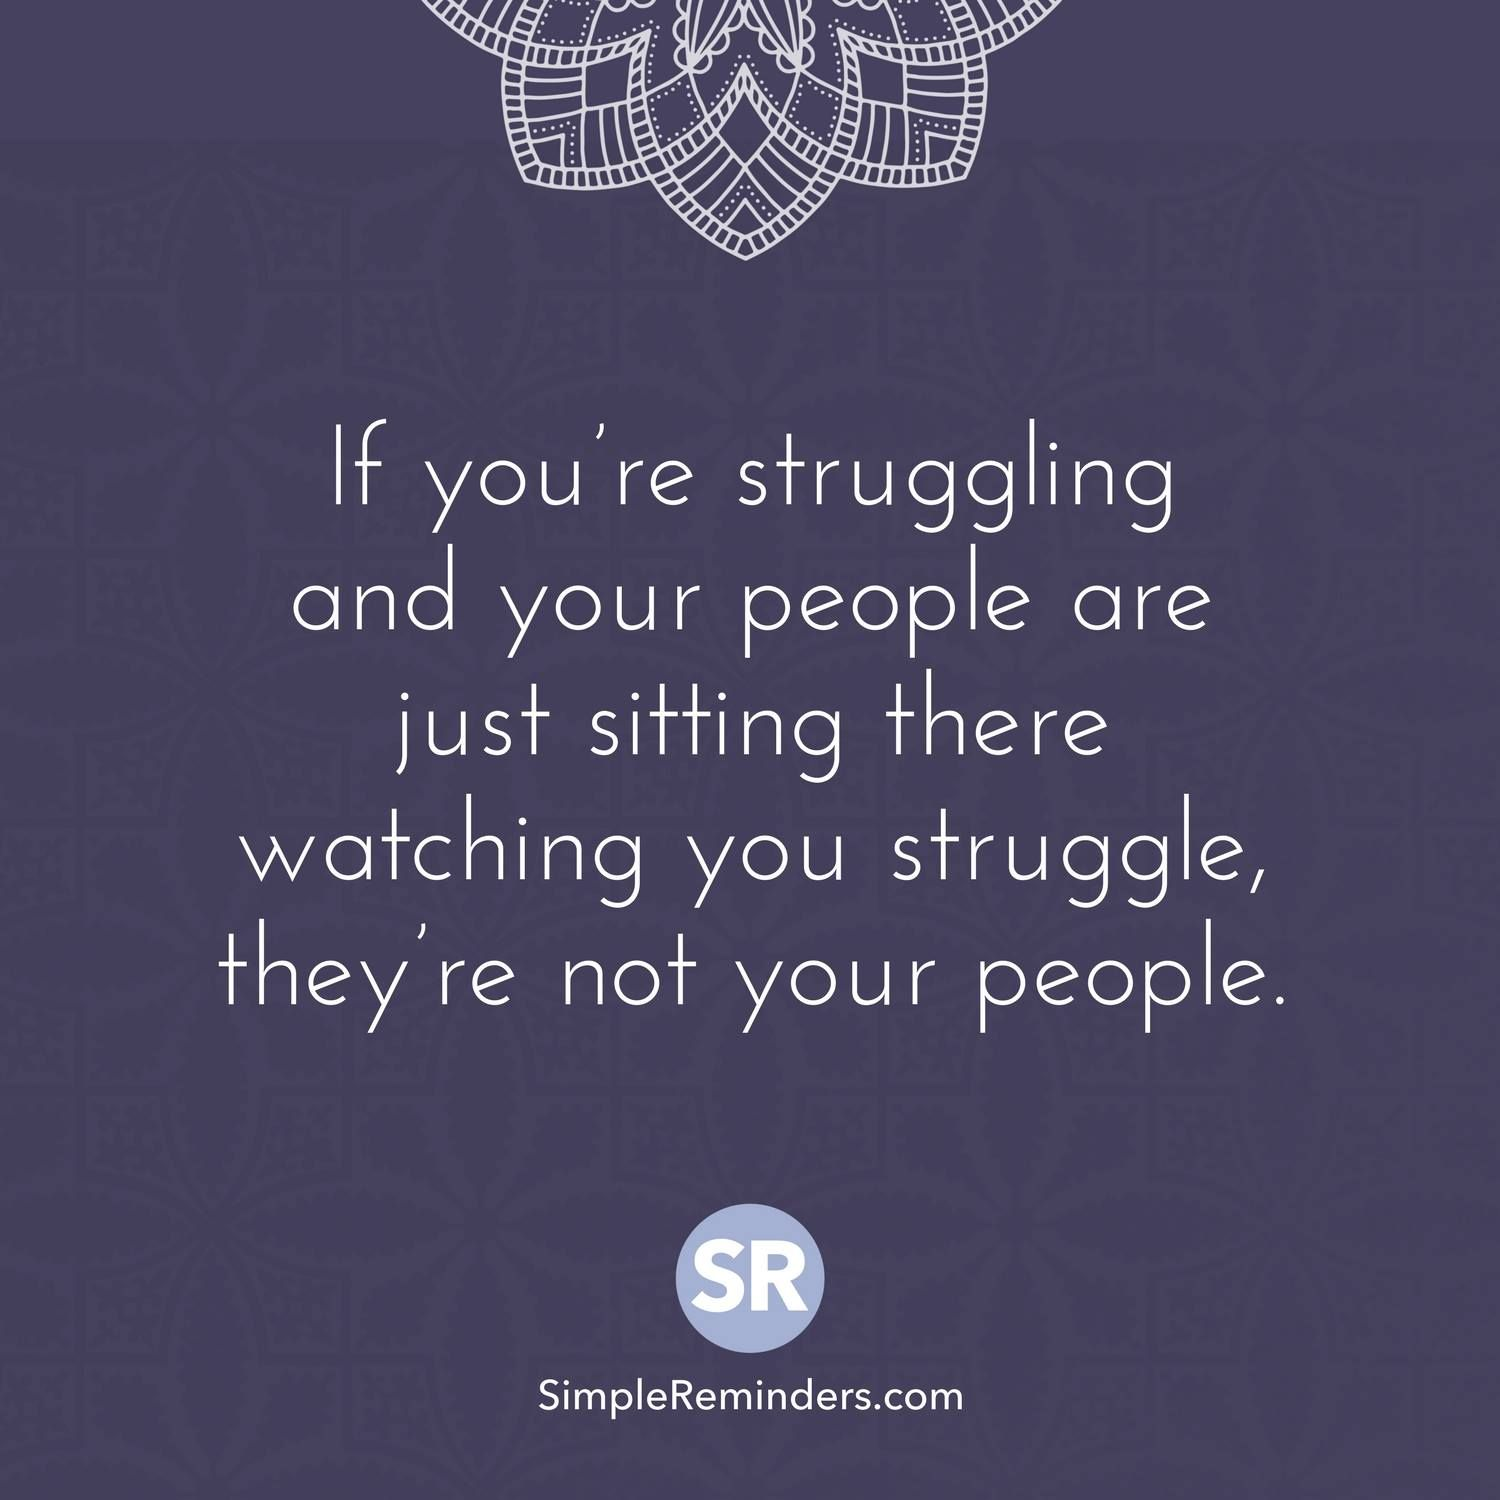 If You Re Struggling And Your People Are Just Sitting There Watching You Struggle They Re Not Your People Struggle Quotes Quotes Positive Quotes